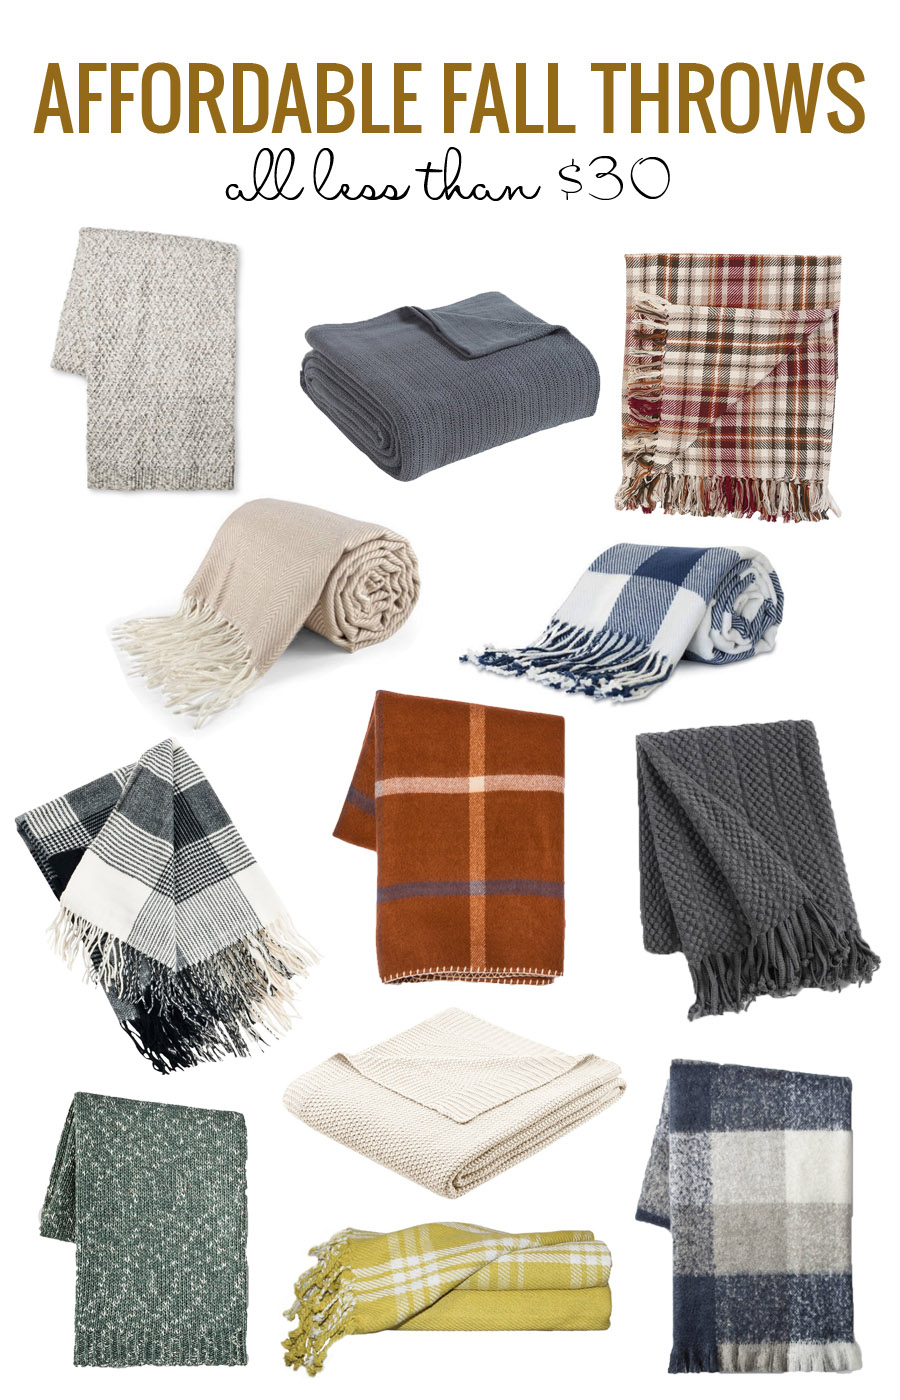 Cuddle up in style! Affordable Fall Throws Under $30 2017 via Remodelaholic.com